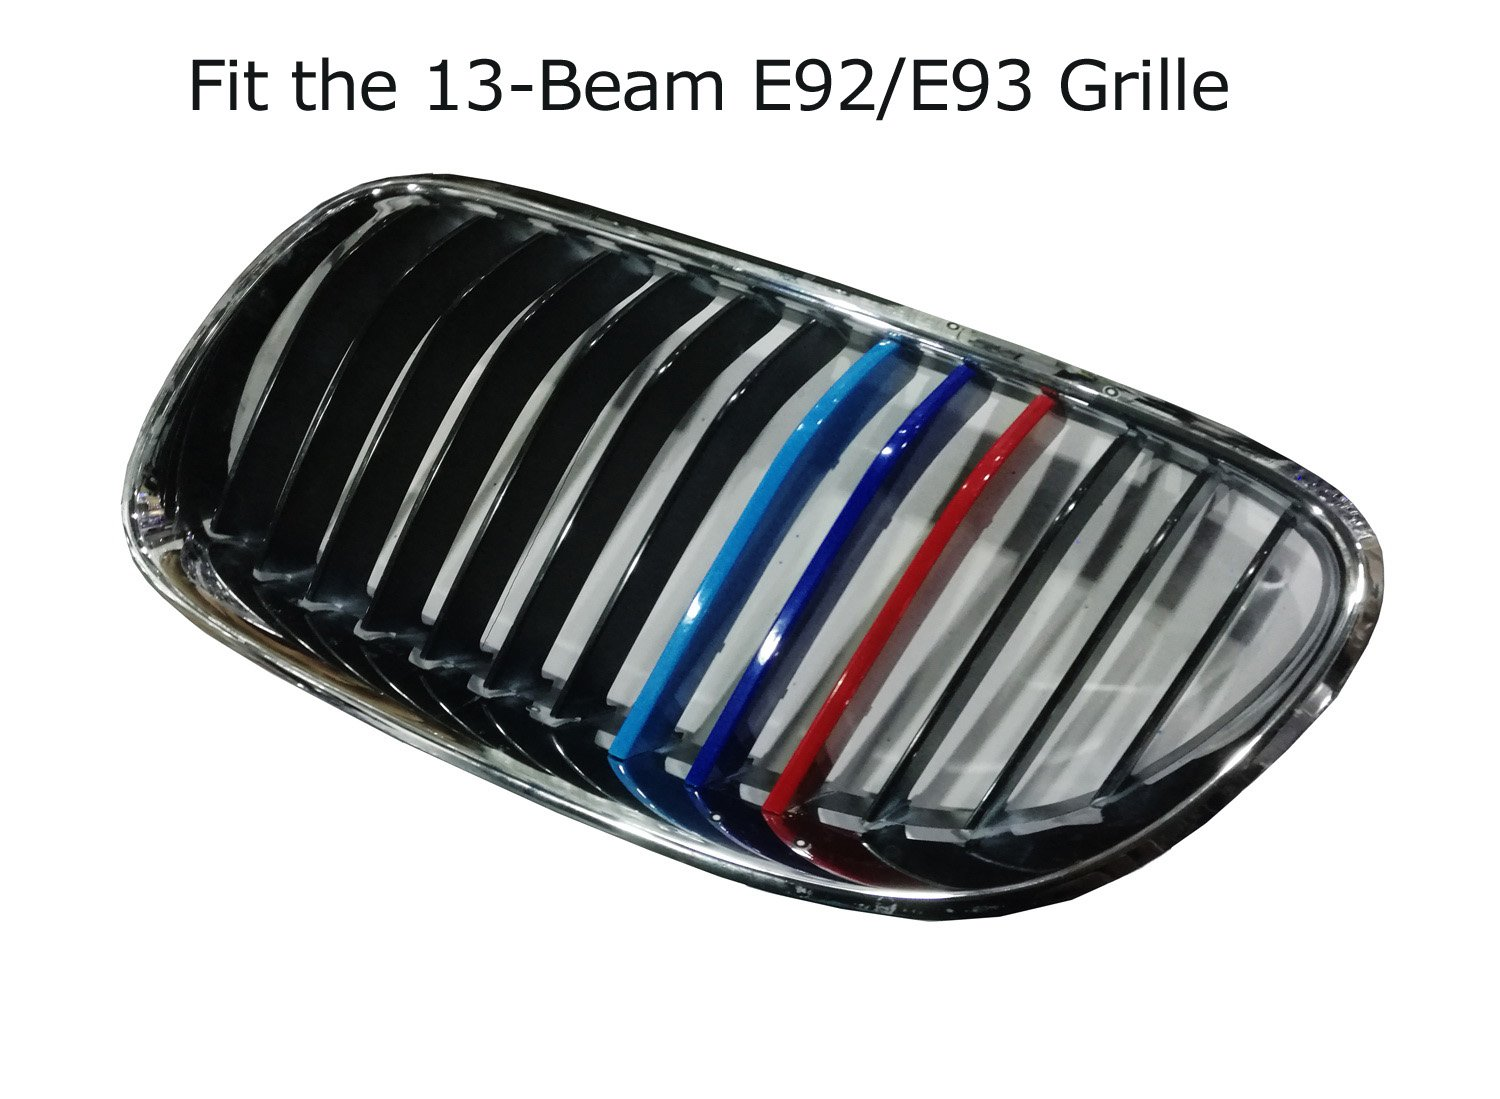 2008-2012 E71 X6 Center Kidney Grill iJDMTOY Exact Fit //////M-Colored Grille Insert Trims For 2007-2013 BMW E70 X5